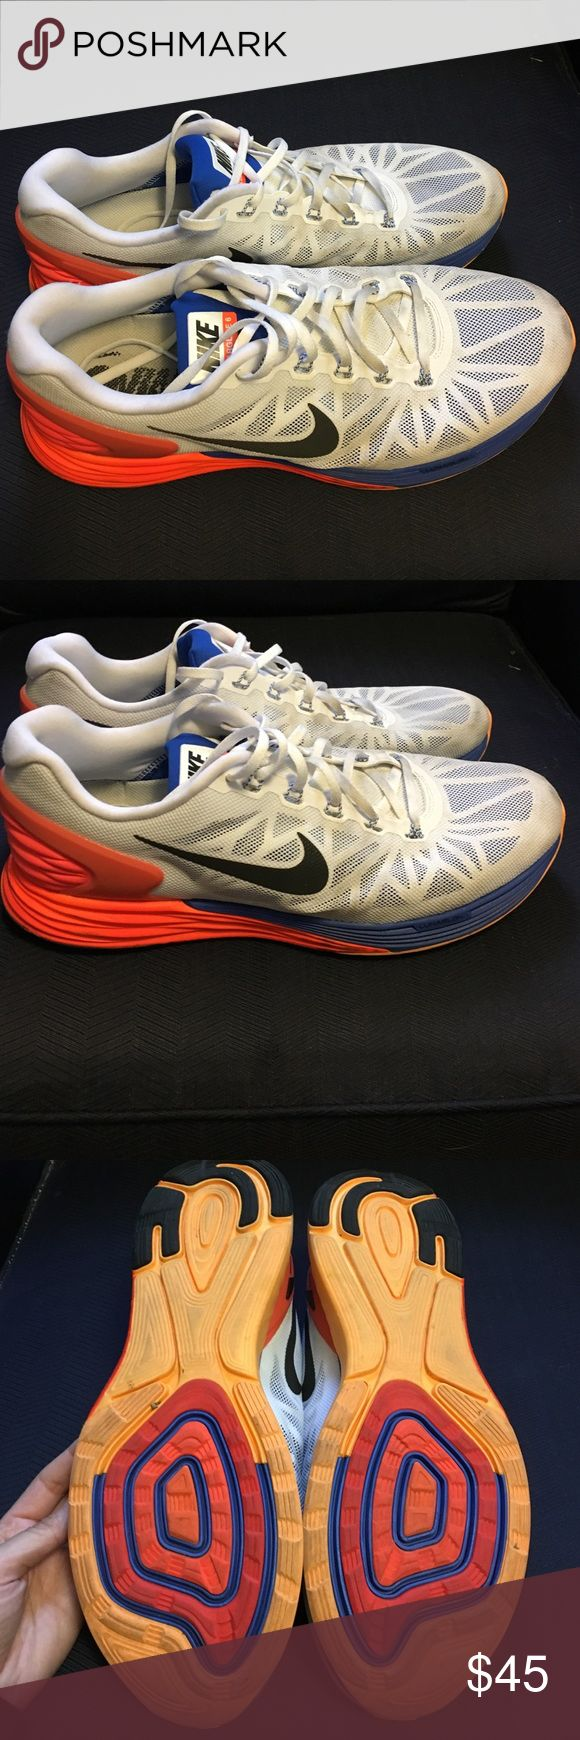 Men's Nike Lunarglide 6, size 12 Very good condition--used indoors only for workouts. Still nice and white and soles in great shape for more use! Nike Shoes Sneakers